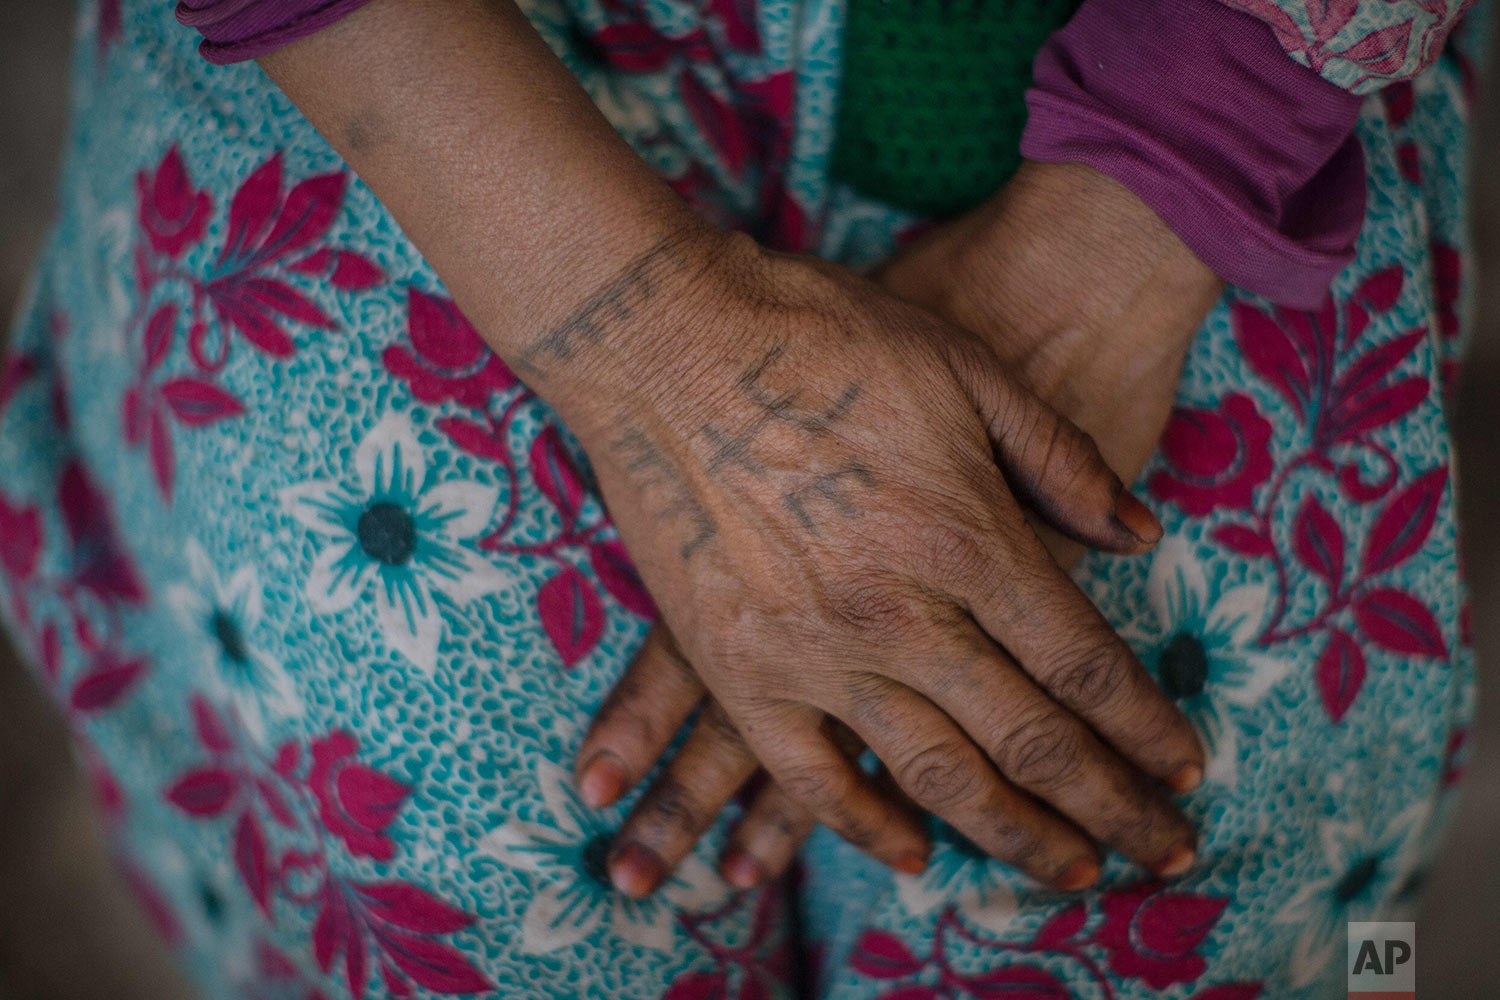 In this Saturday, Oct. 13, 2018 photo, Marhich Rkia Ali, 48, displays tattoos on her arm as she poses for a portrait, in the town of Anregui, near Azilal, central Morocco. (AP Photo/Mosa'ab Elshamy)